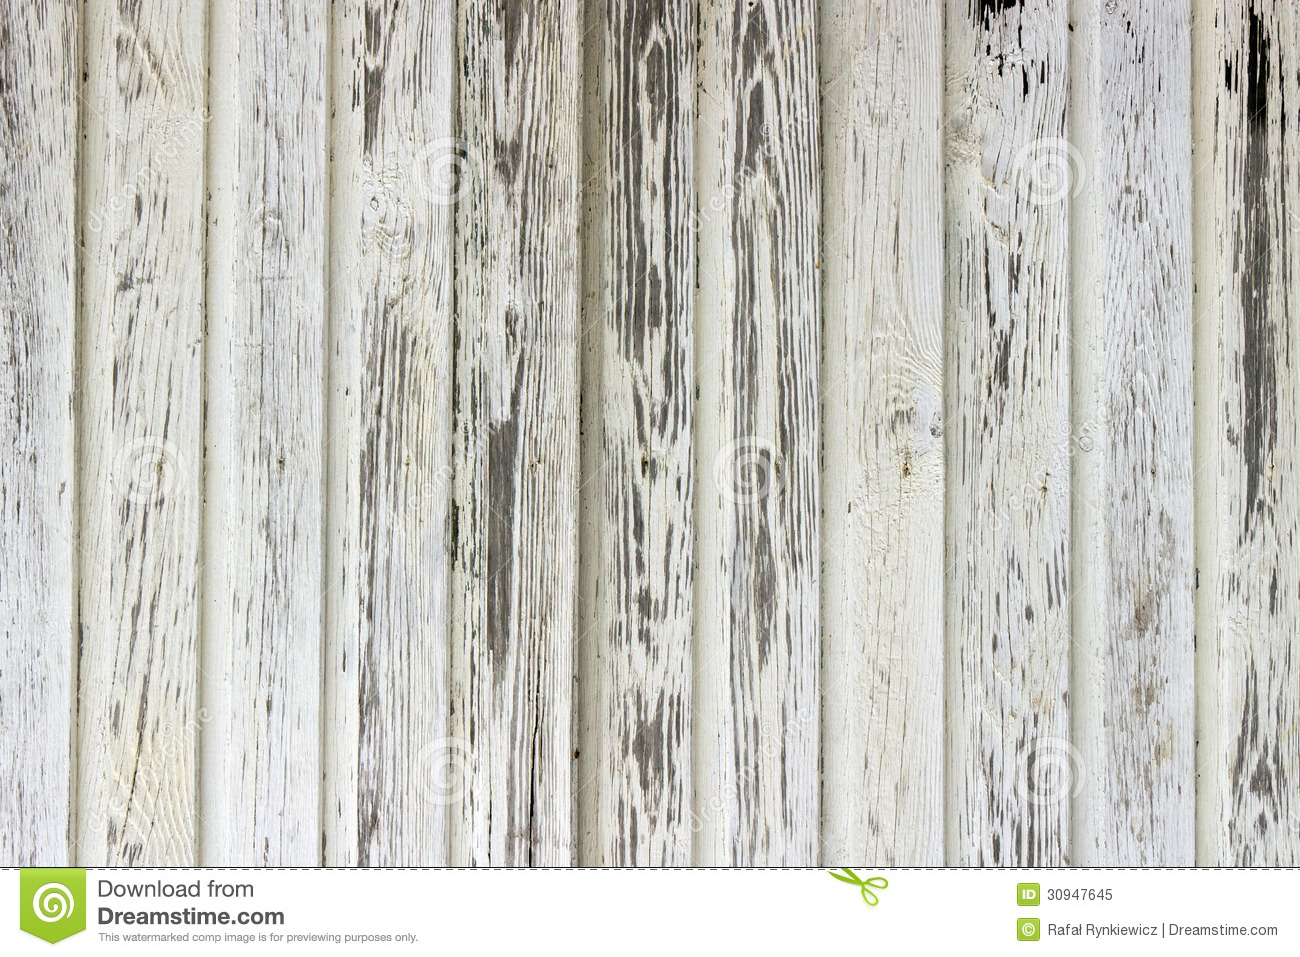 Old White Painted Wood Wall Stock Image - Image: 30947645